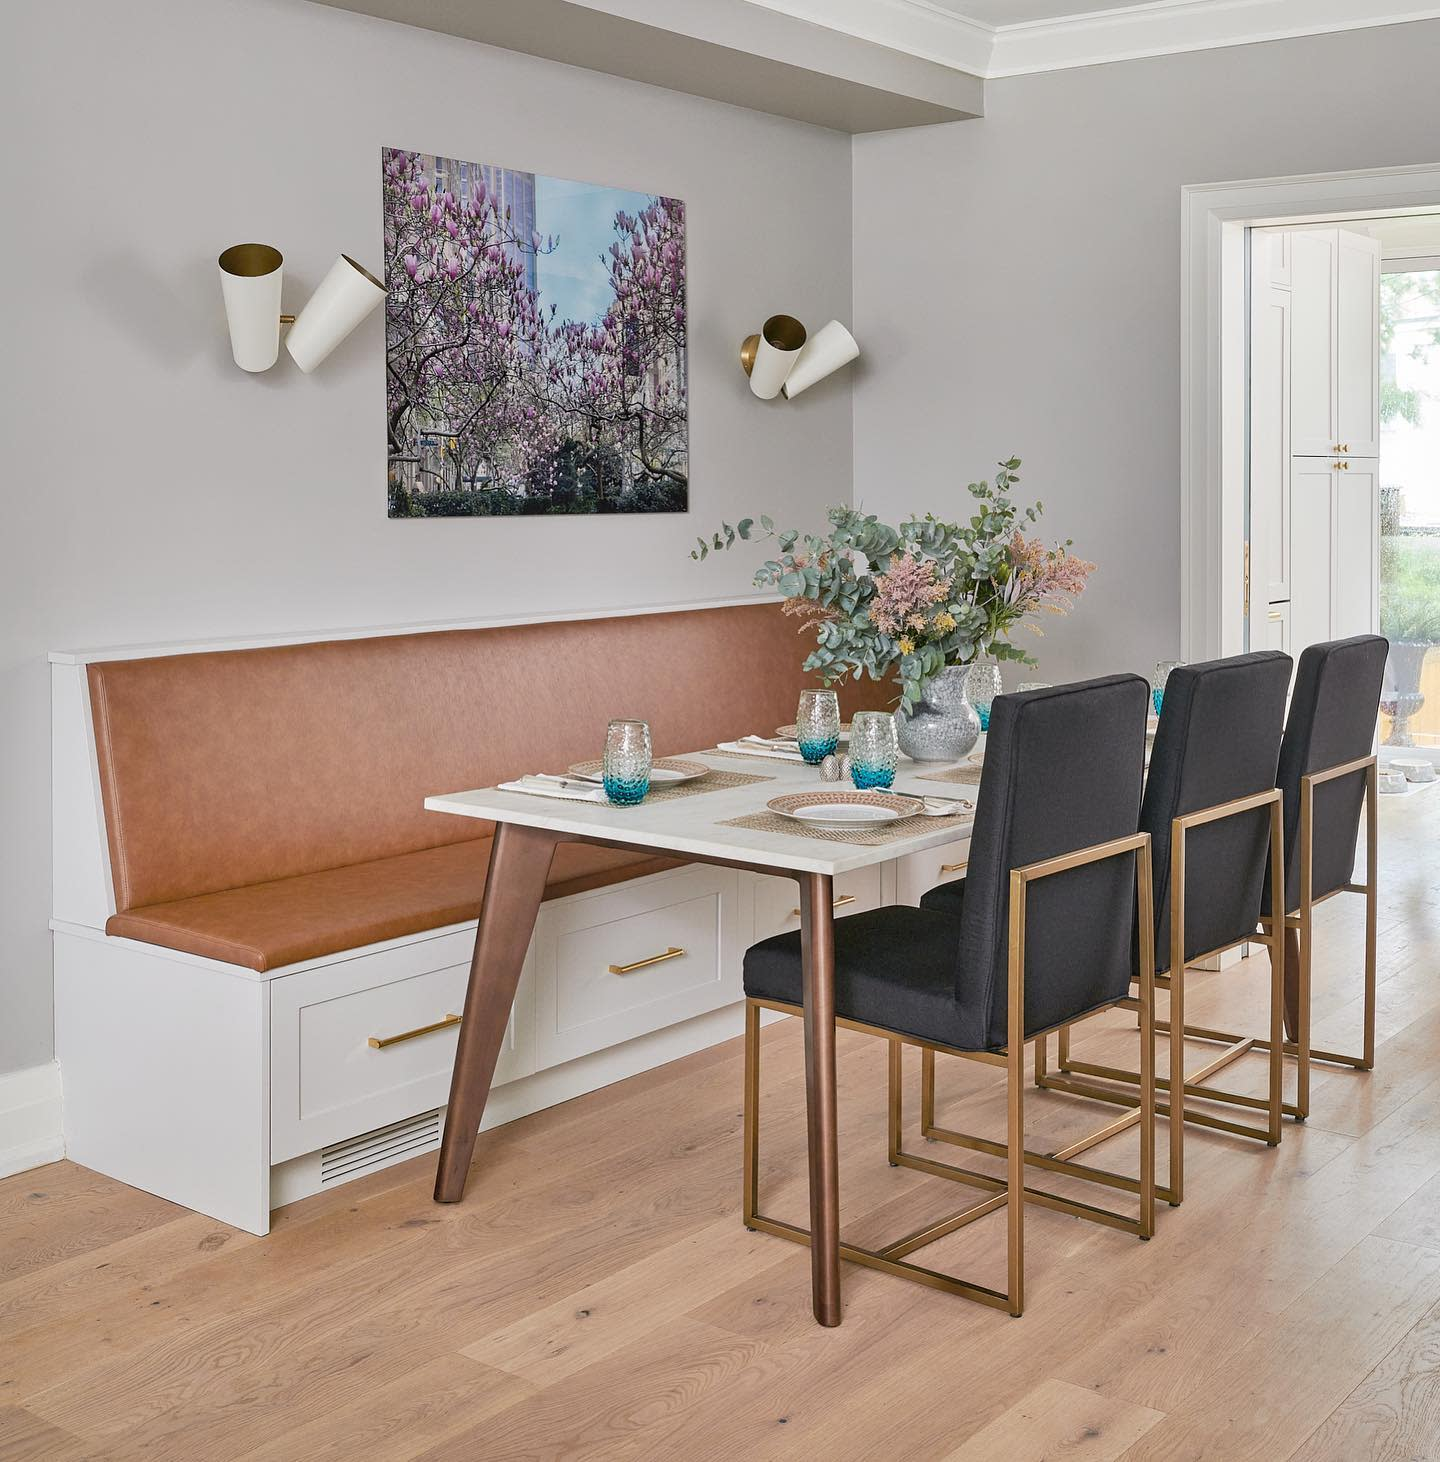 Banquette Small Dining Room Ideas -urban_blueprint